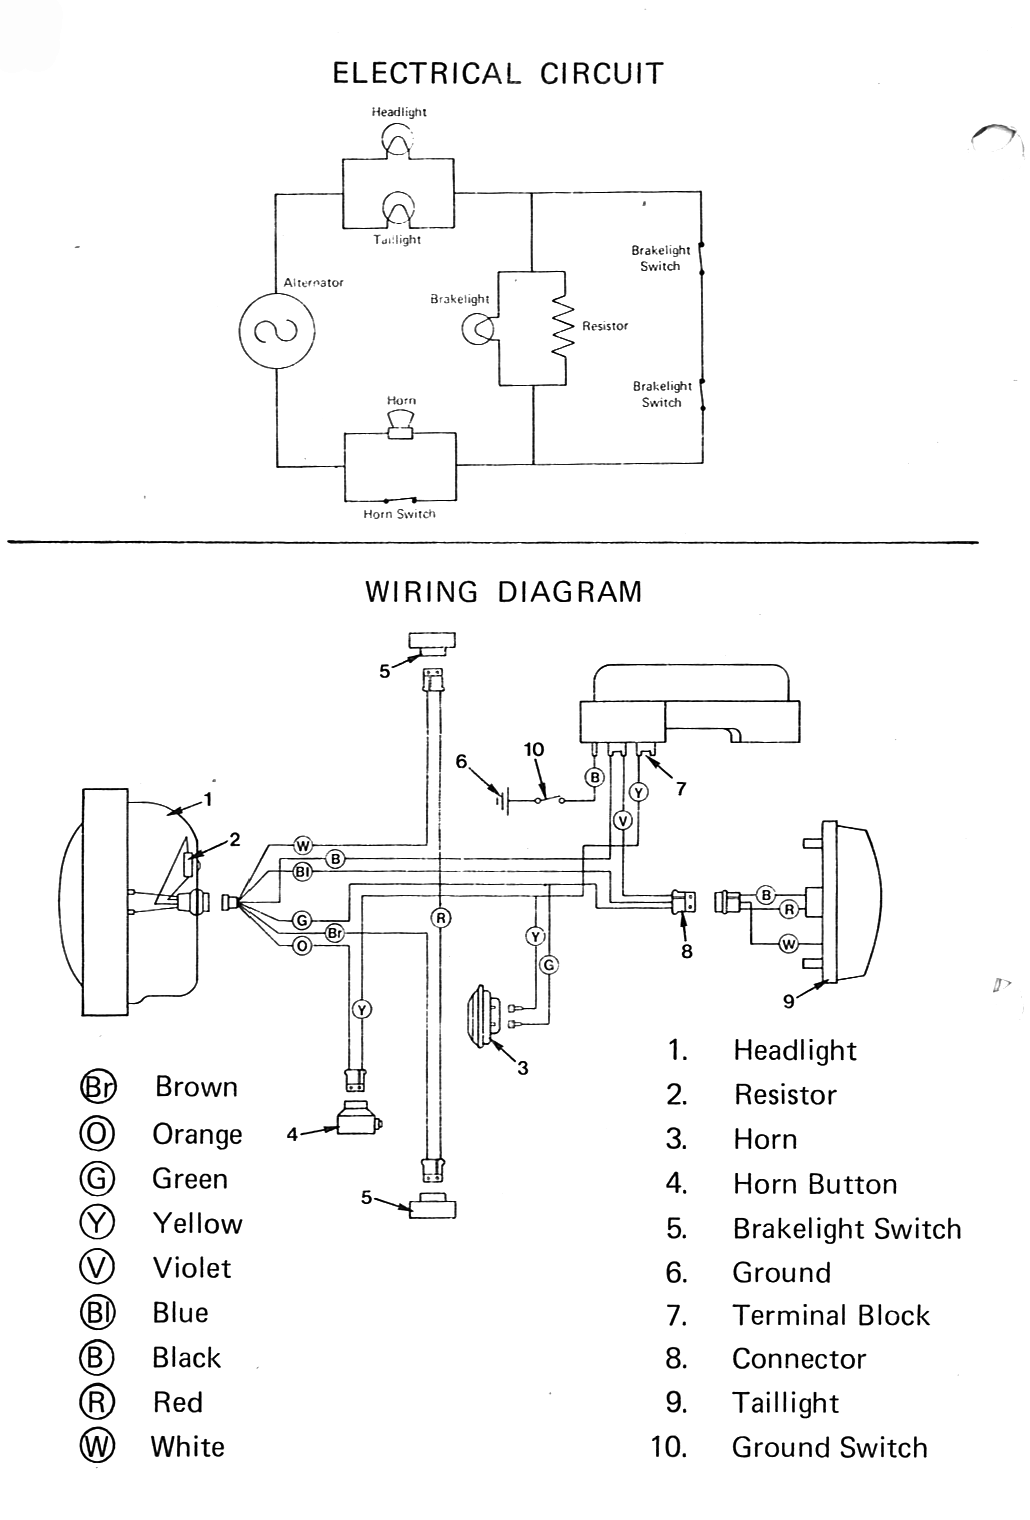 For Vip Scooter Headlight Wiring Diagrams Diagram Libraries Schematic List Of Moped Wikifor 21